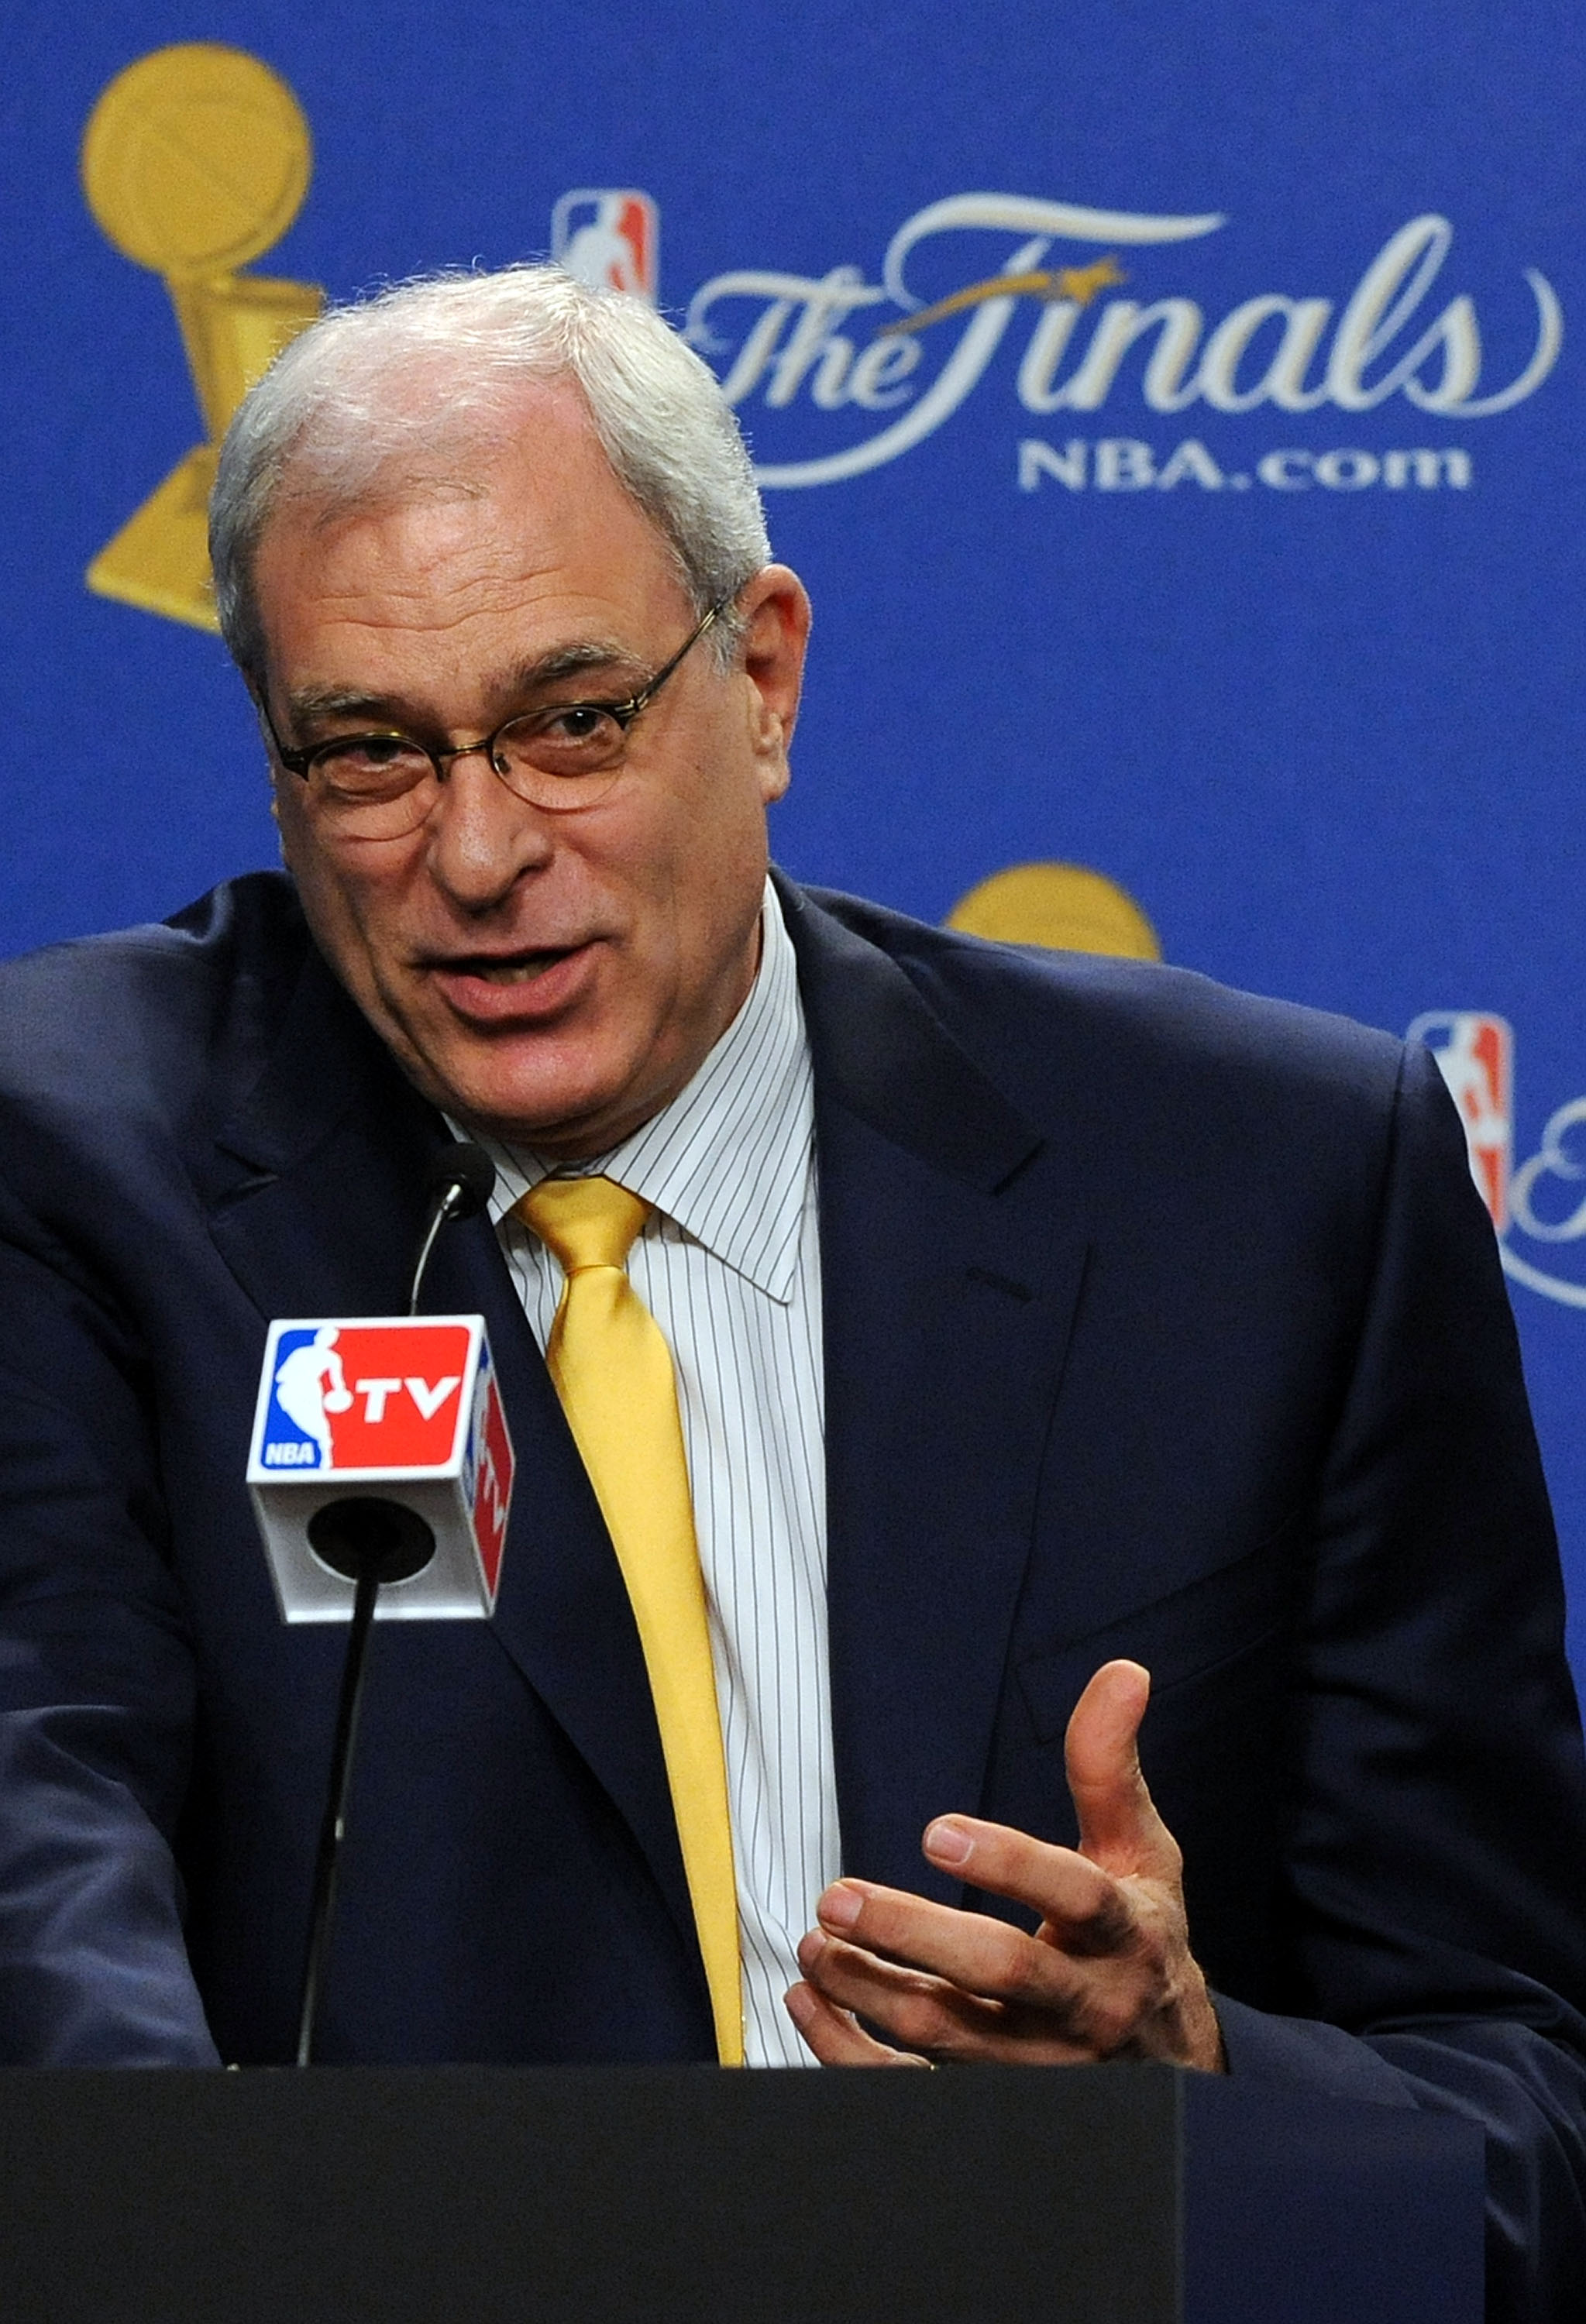 LOS ANGELES, CA - JUNE 17:  Head coach Phil Jackson of the Los Angeles Lakers speaks during a pregame news conference before taking on the Boston Celtics in Game Seven of the 2010 NBA Finals at Staples Center on June 17, 2010 in Los Angeles, California.